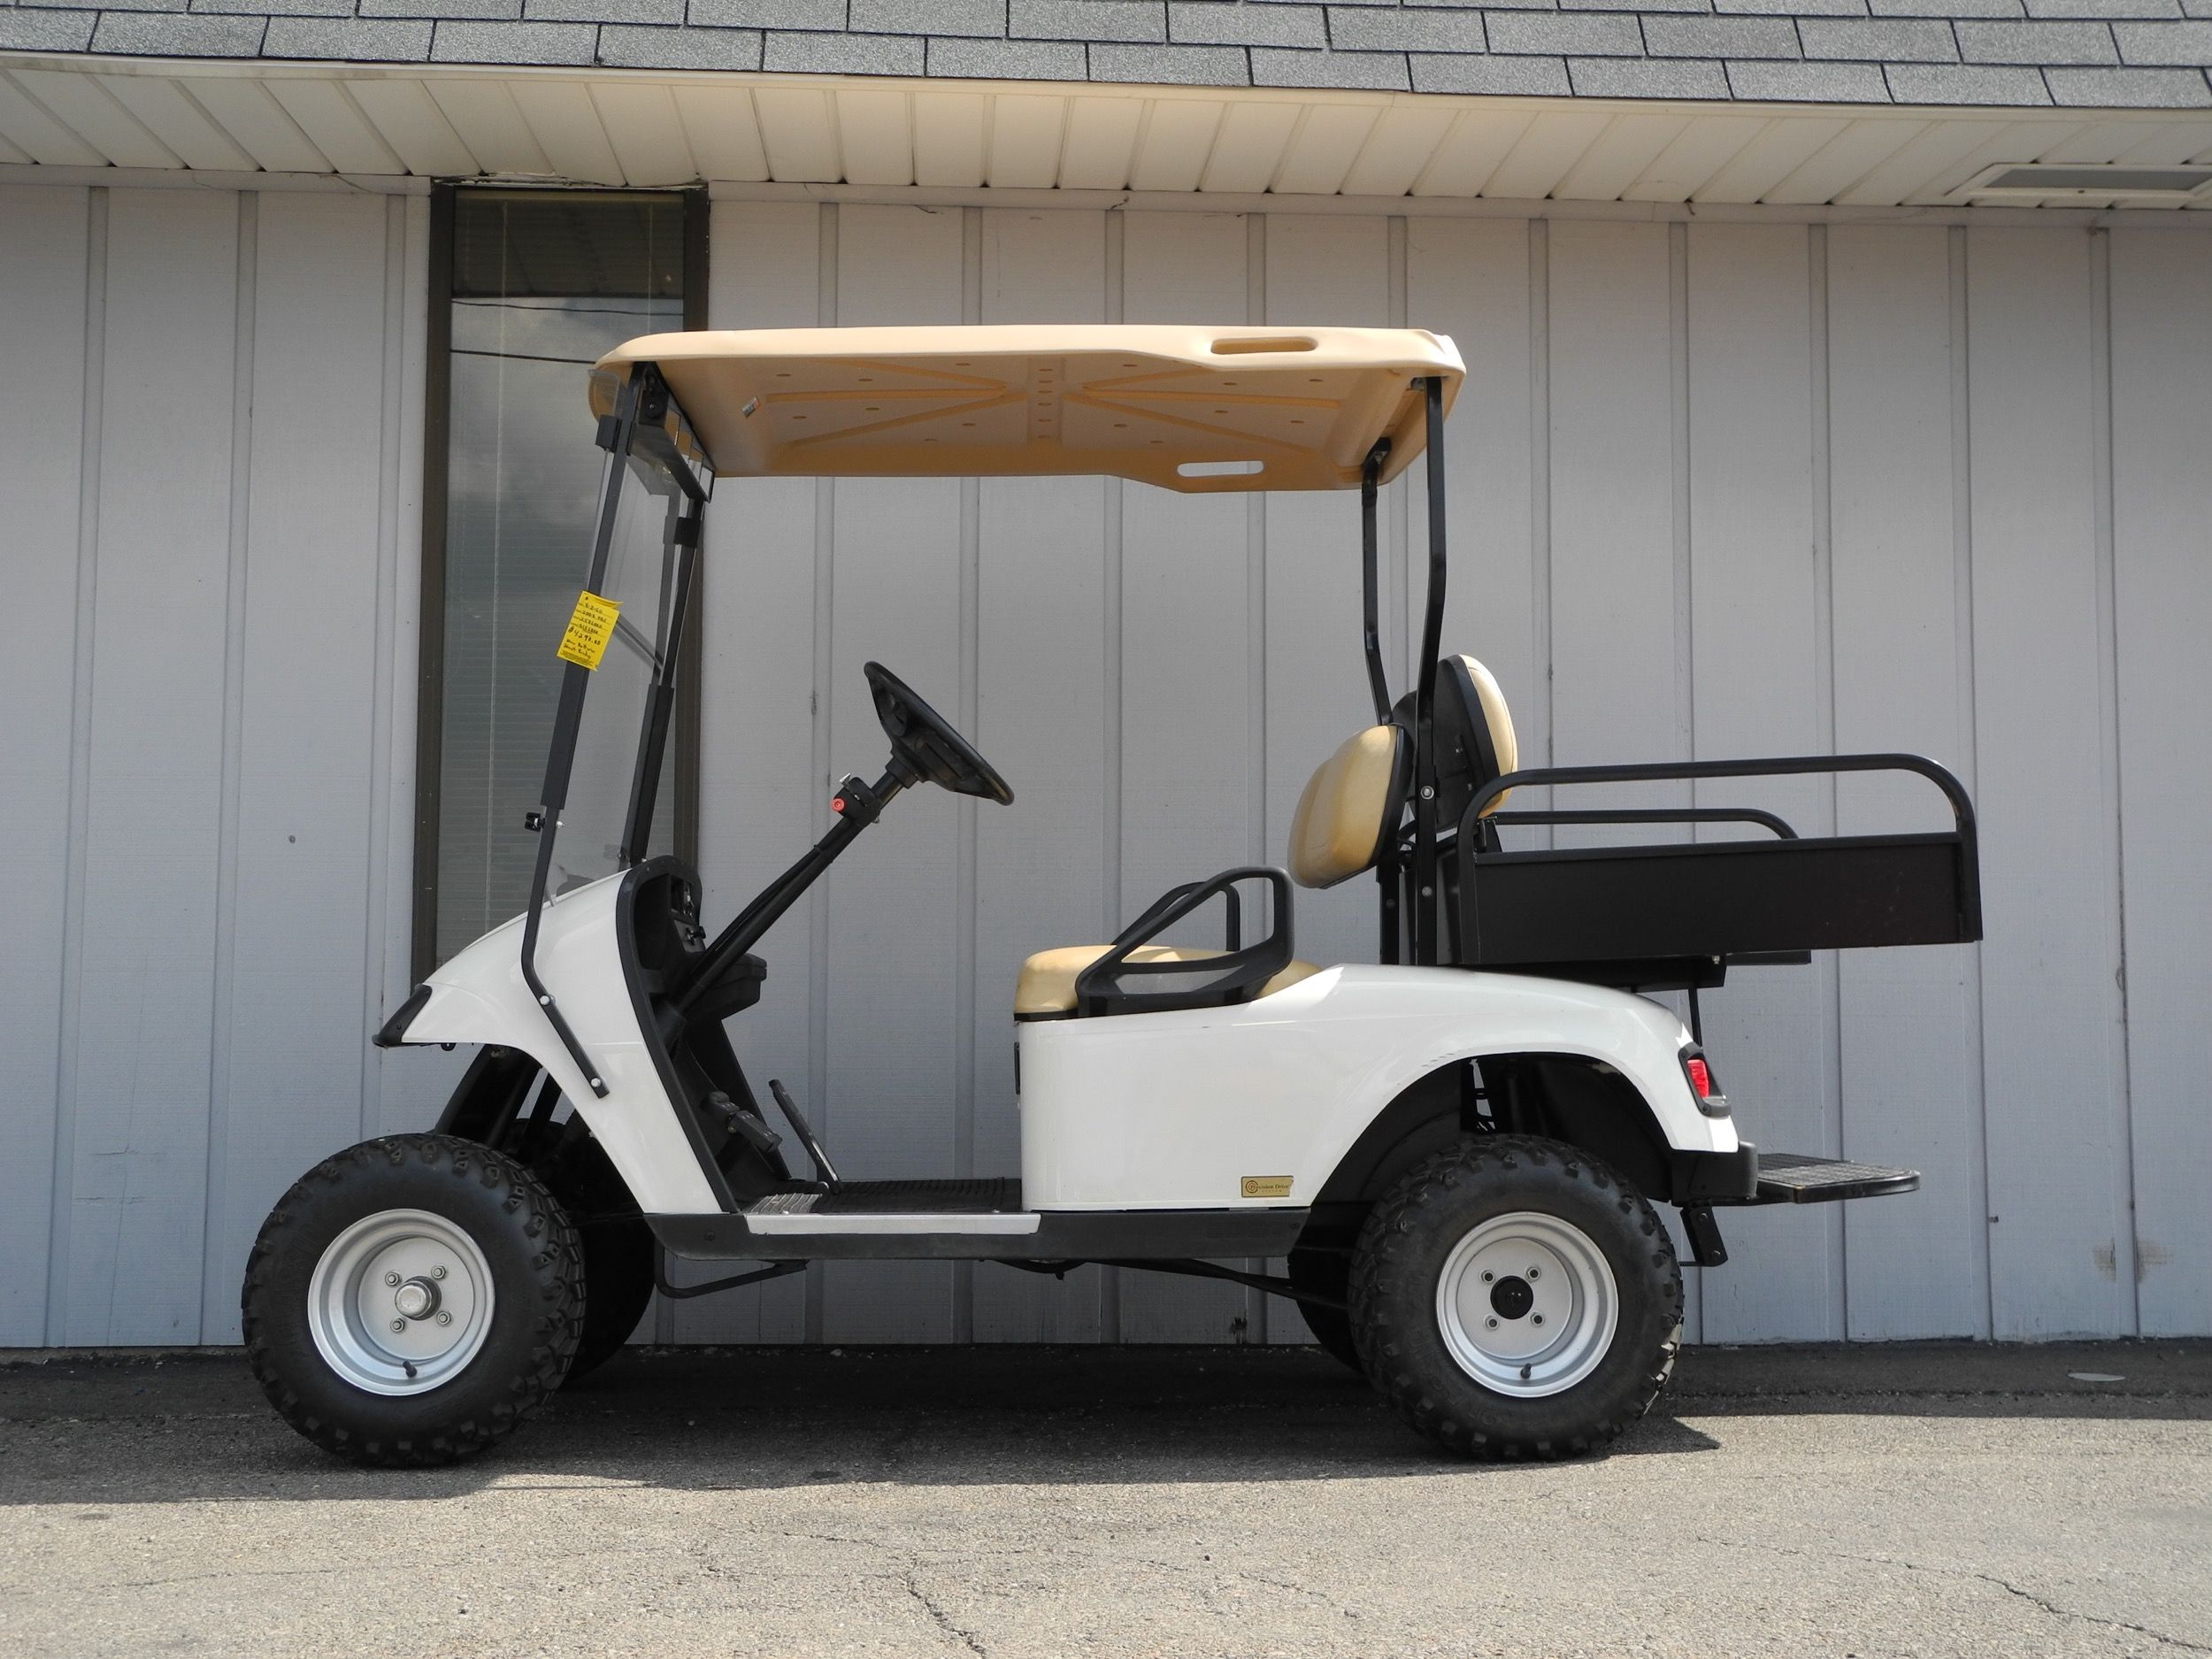 This 2008 E Z Go Pds Electric Golf Car Is Street Ready With Premium Lights Folding Windshield Rear View Mirror Standard Hard To Golf Car Used Golf Carts Car